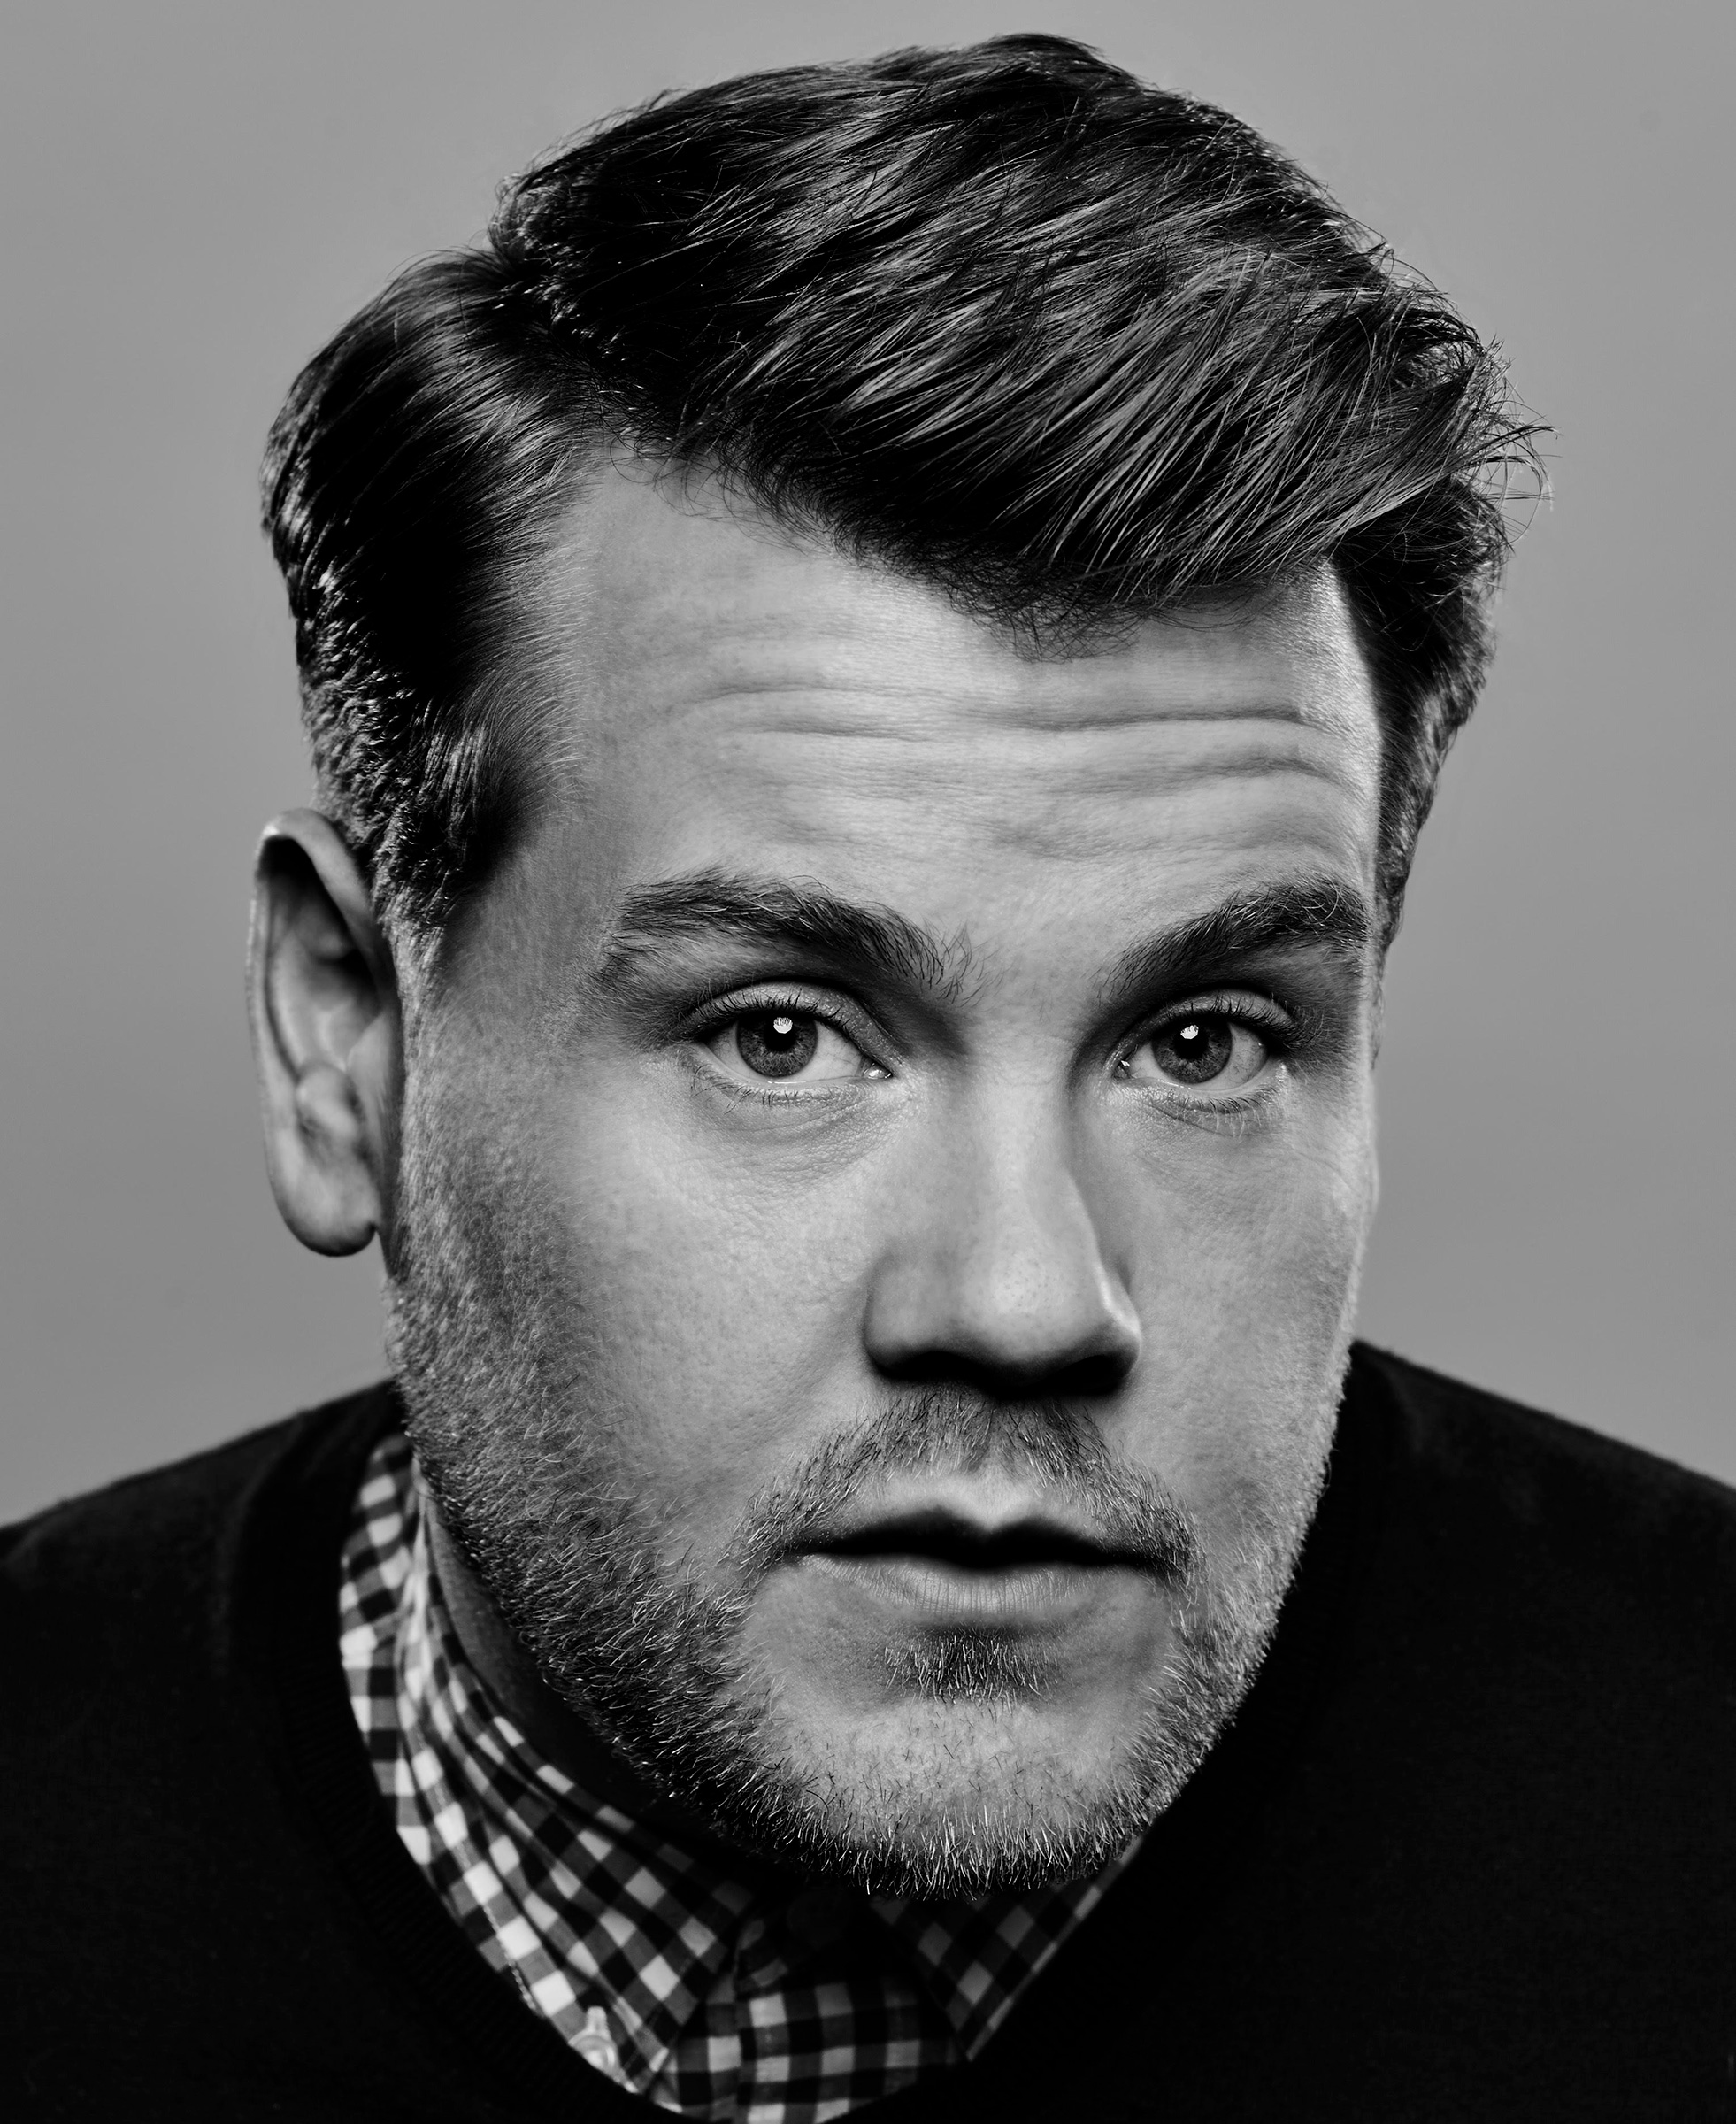 In his March30 special, Corden brought together stars including Billie Eilish, Will Ferrell and David Blaine